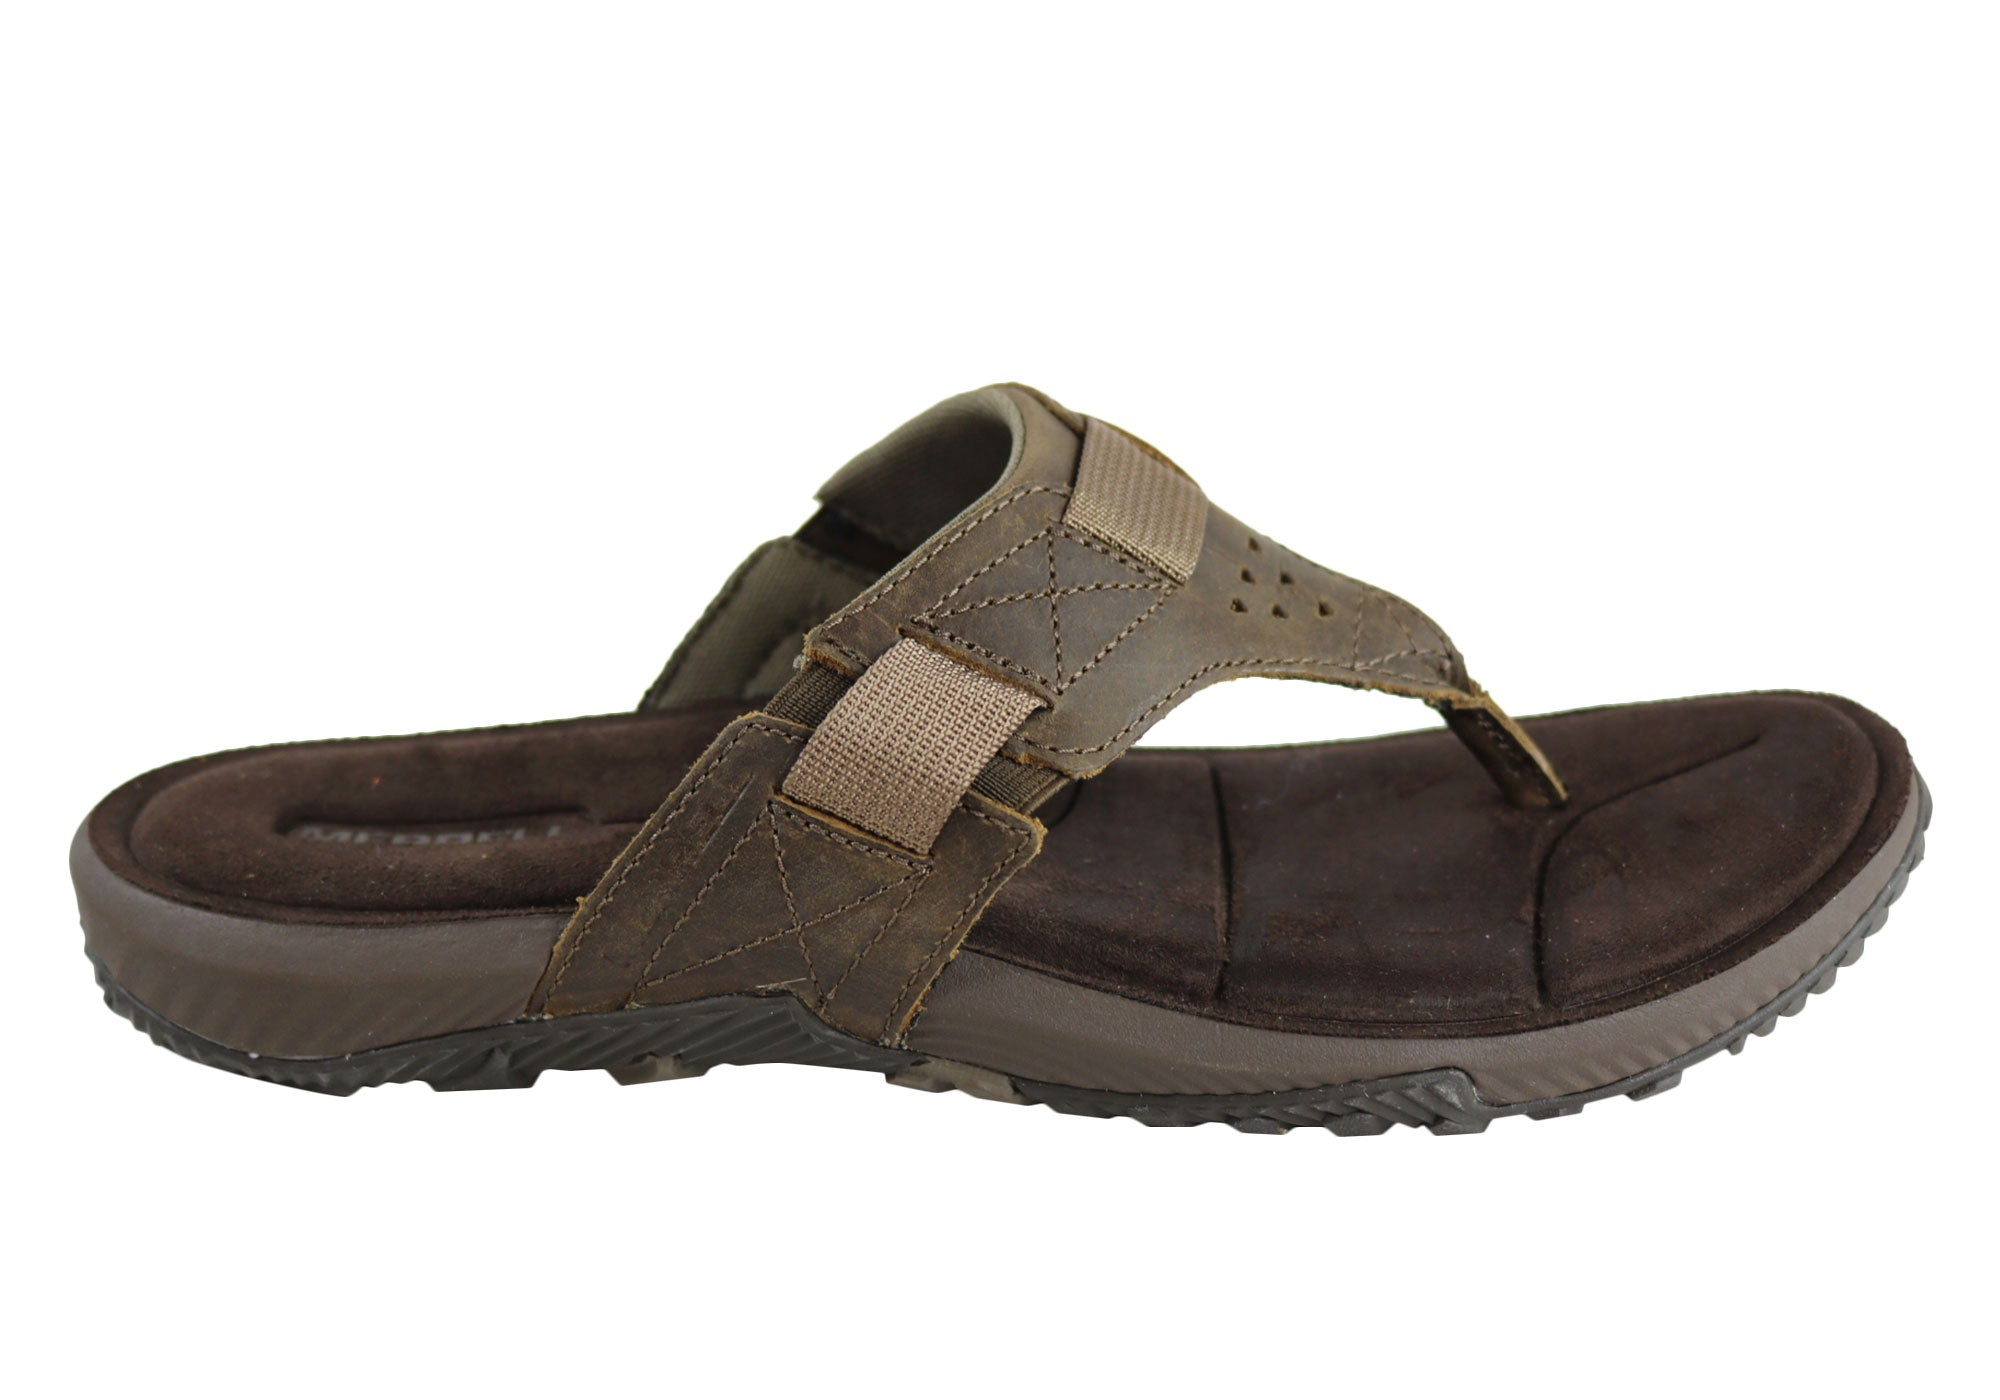 248672ba65f3 Home Merrell Terrant Thong Mens Comfortable Leather Sandals. Dark Earth ...